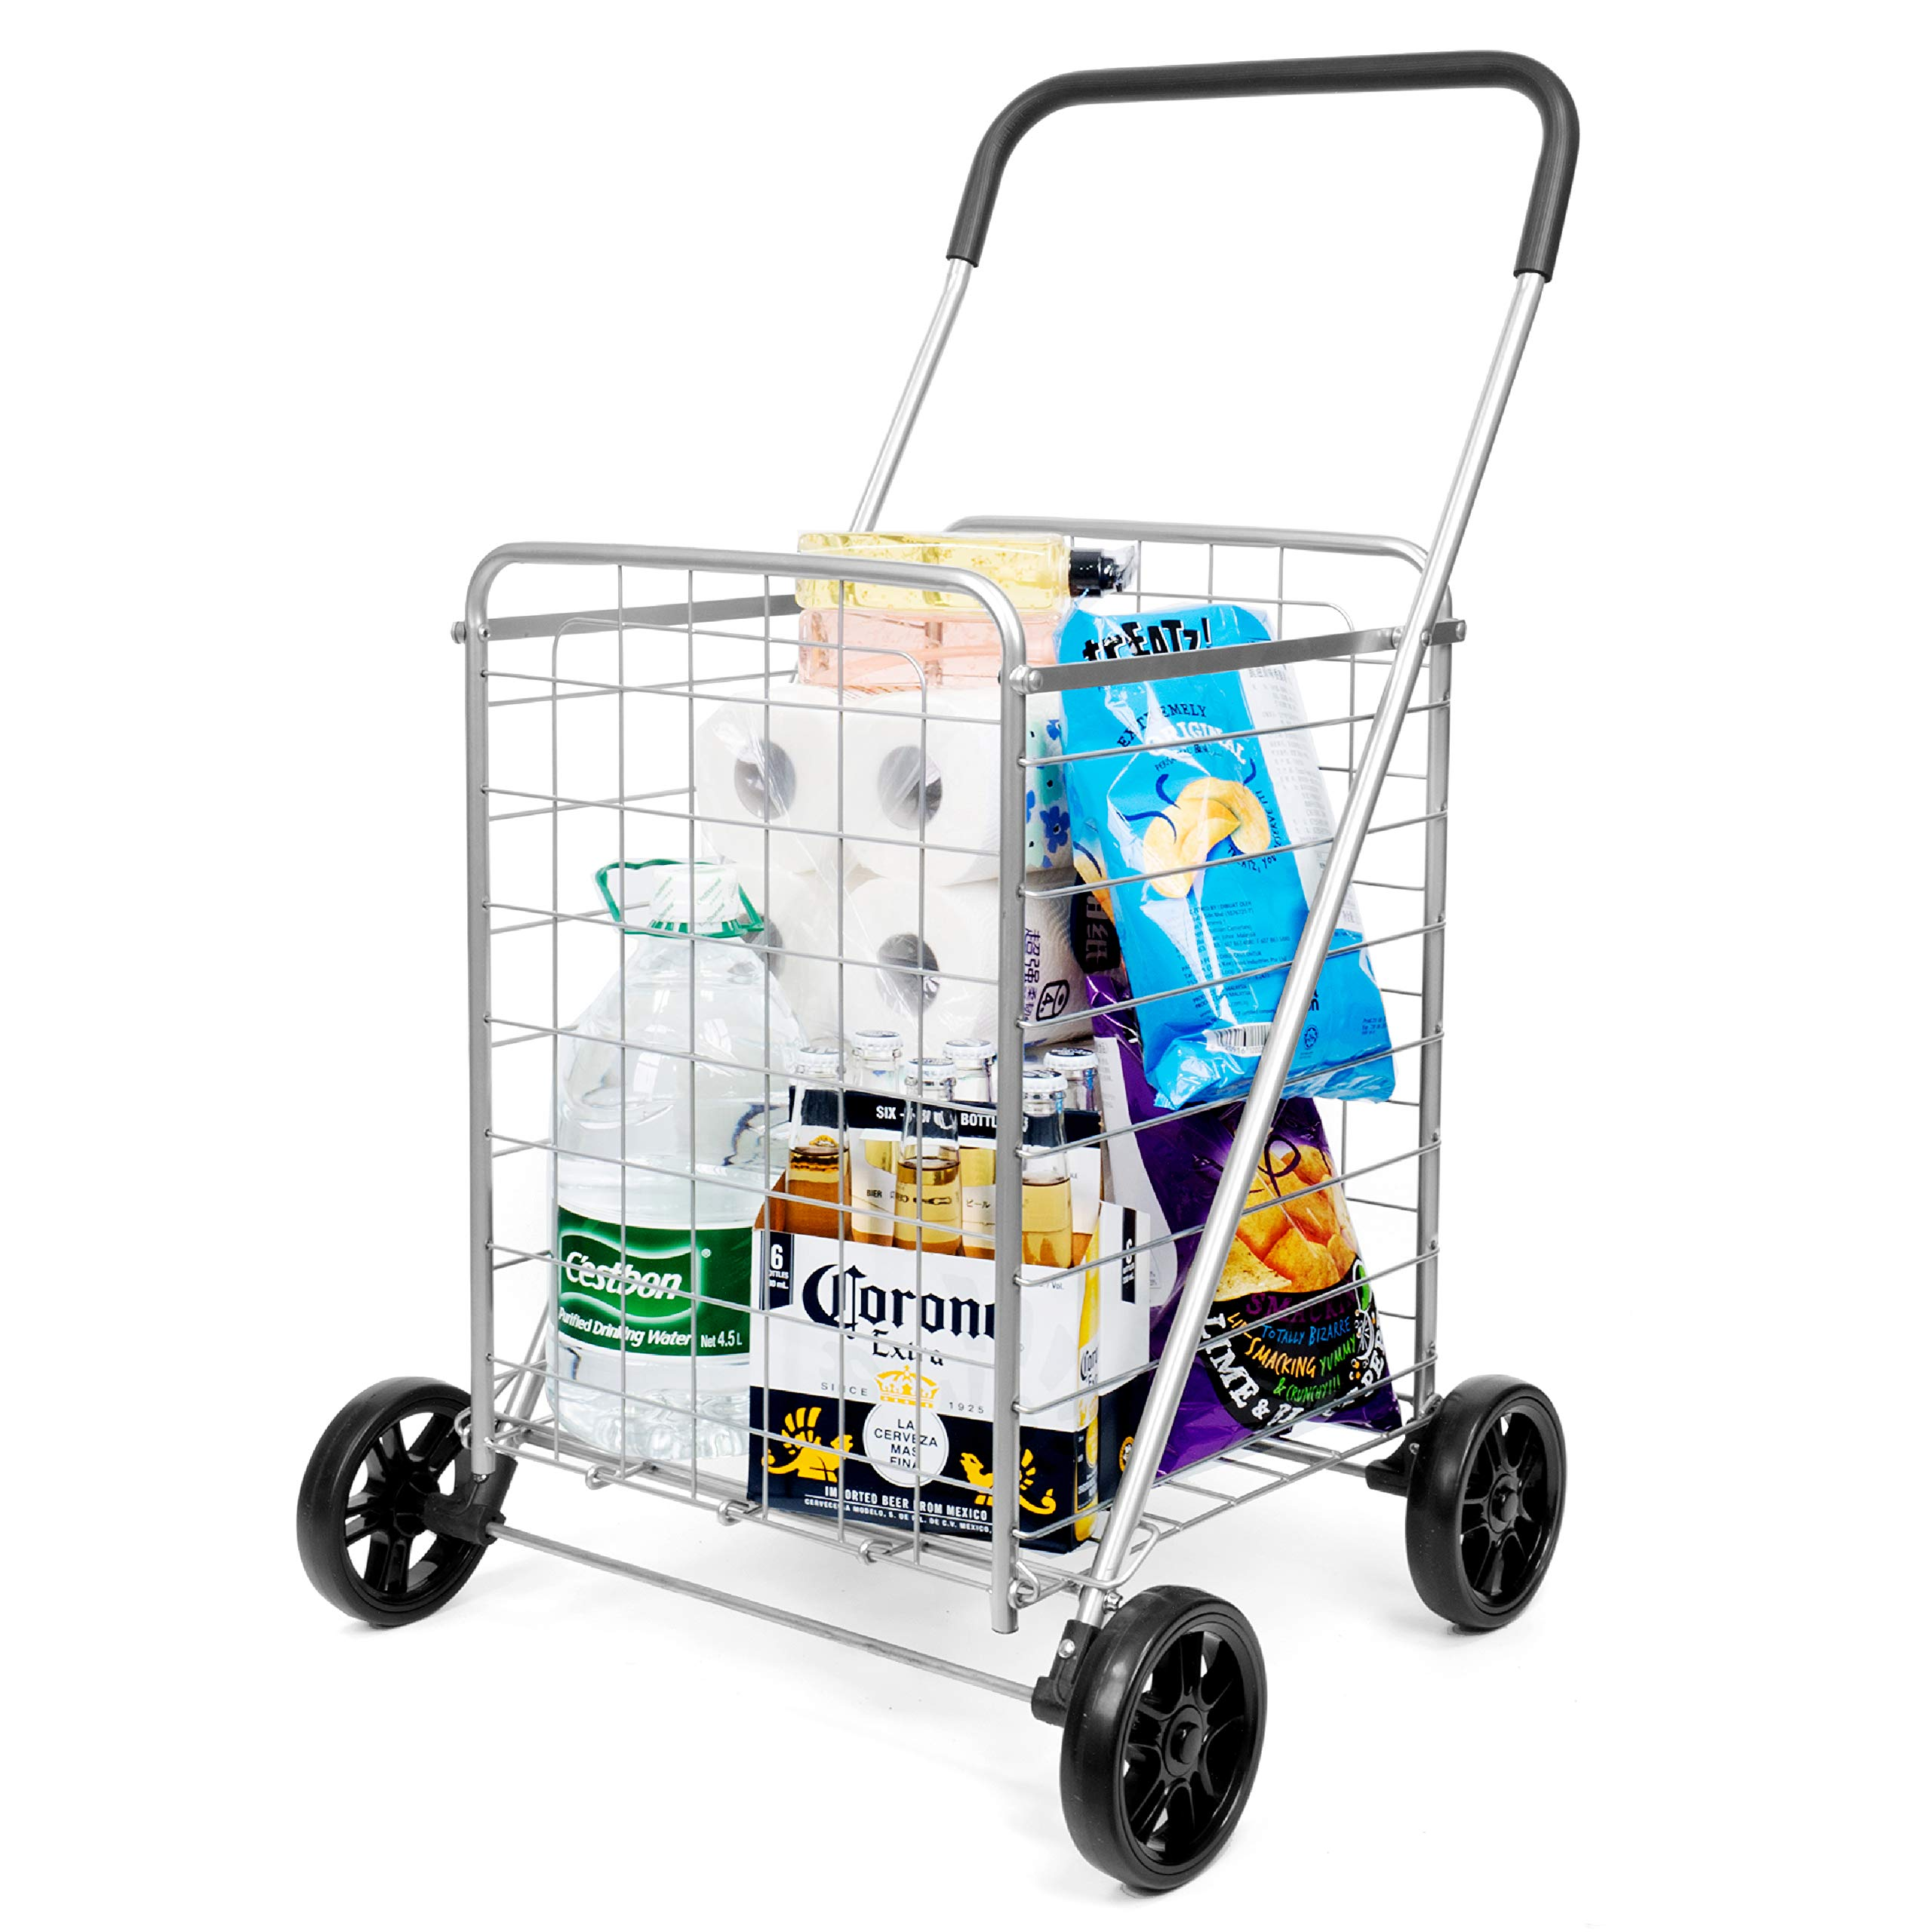 Durable Folding Grocery Shopping Cart - Supenice (SN7511) Oversized Front & Rear Wheels, Light Weight, Medium Size, 66 lbs Capacity, Multipurpose Trolley Dolly Utility Cart Suit for Laundry, Shopping